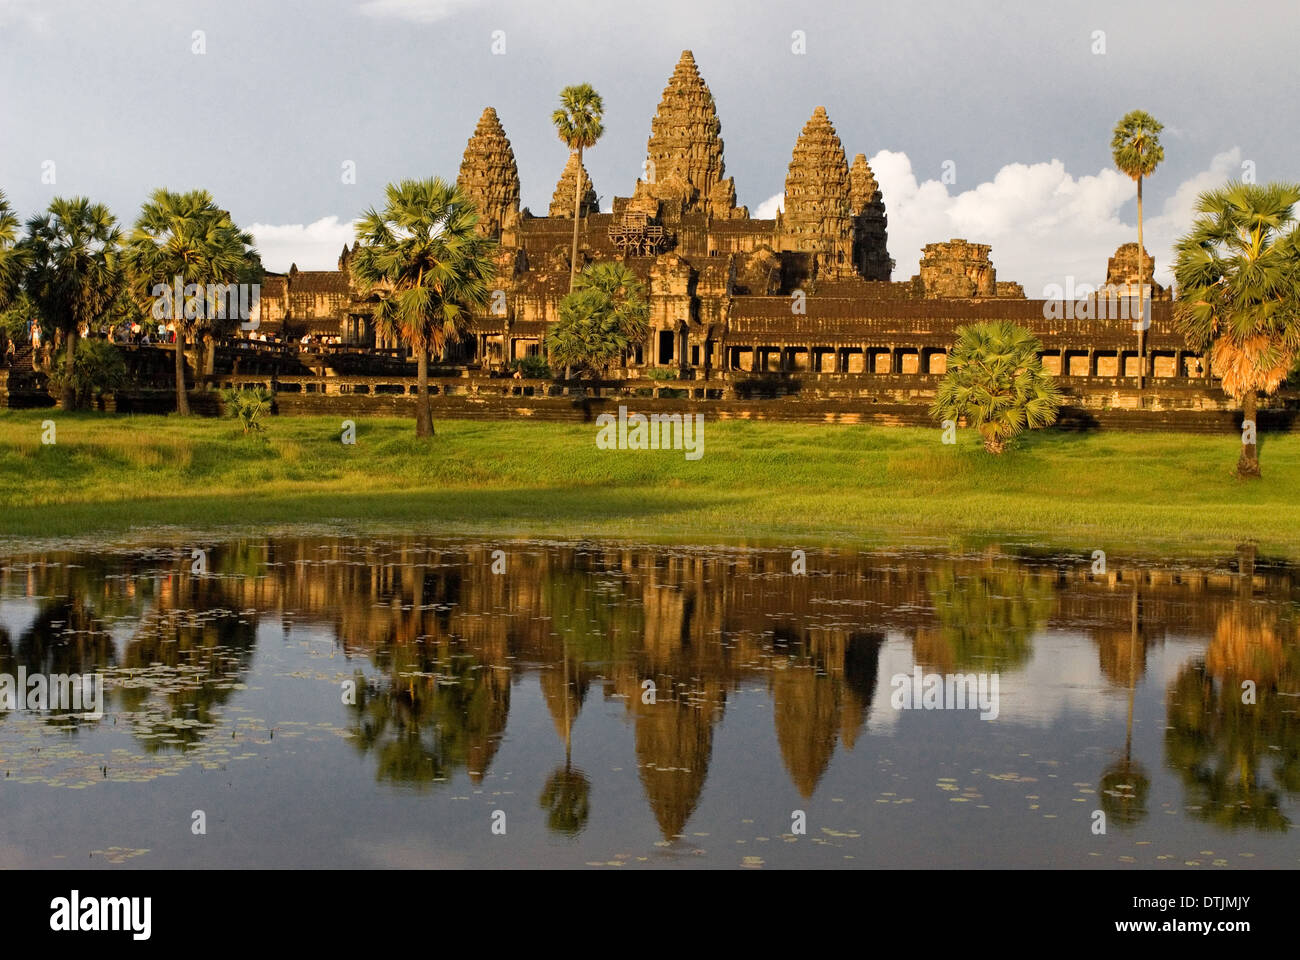 Angkor Wat Temple. The temples of Angkor are highly symbolic structures. The foremost Hindu concept is the temple-mountain, wher - Stock Image